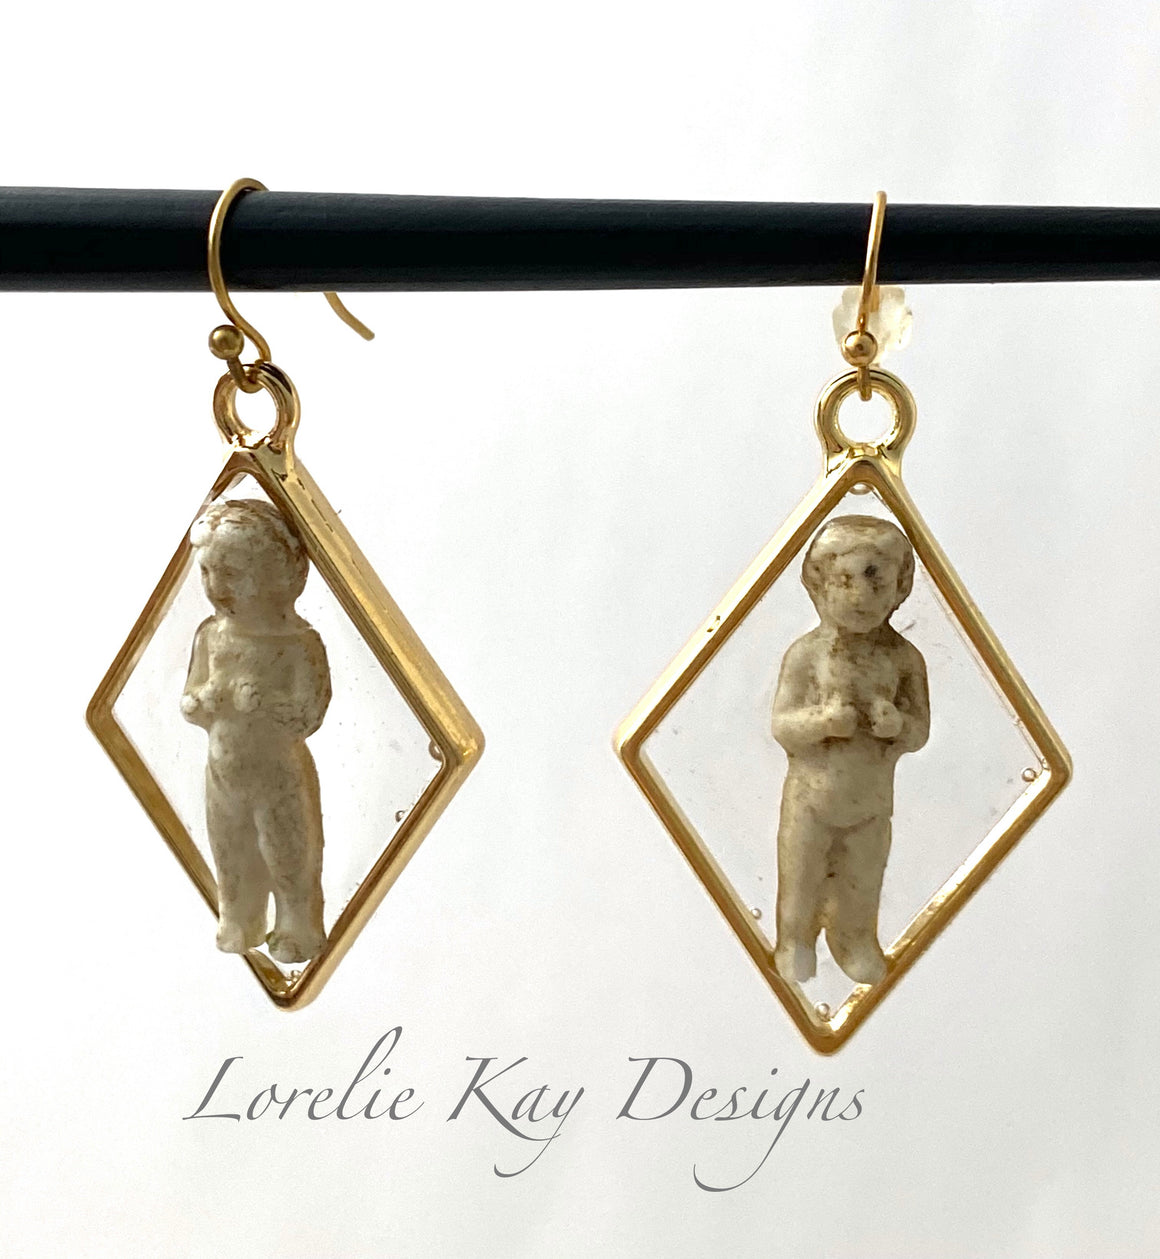 Frozen Charlotte Doll Earrings Triangle Gold Plate Drop Earrings